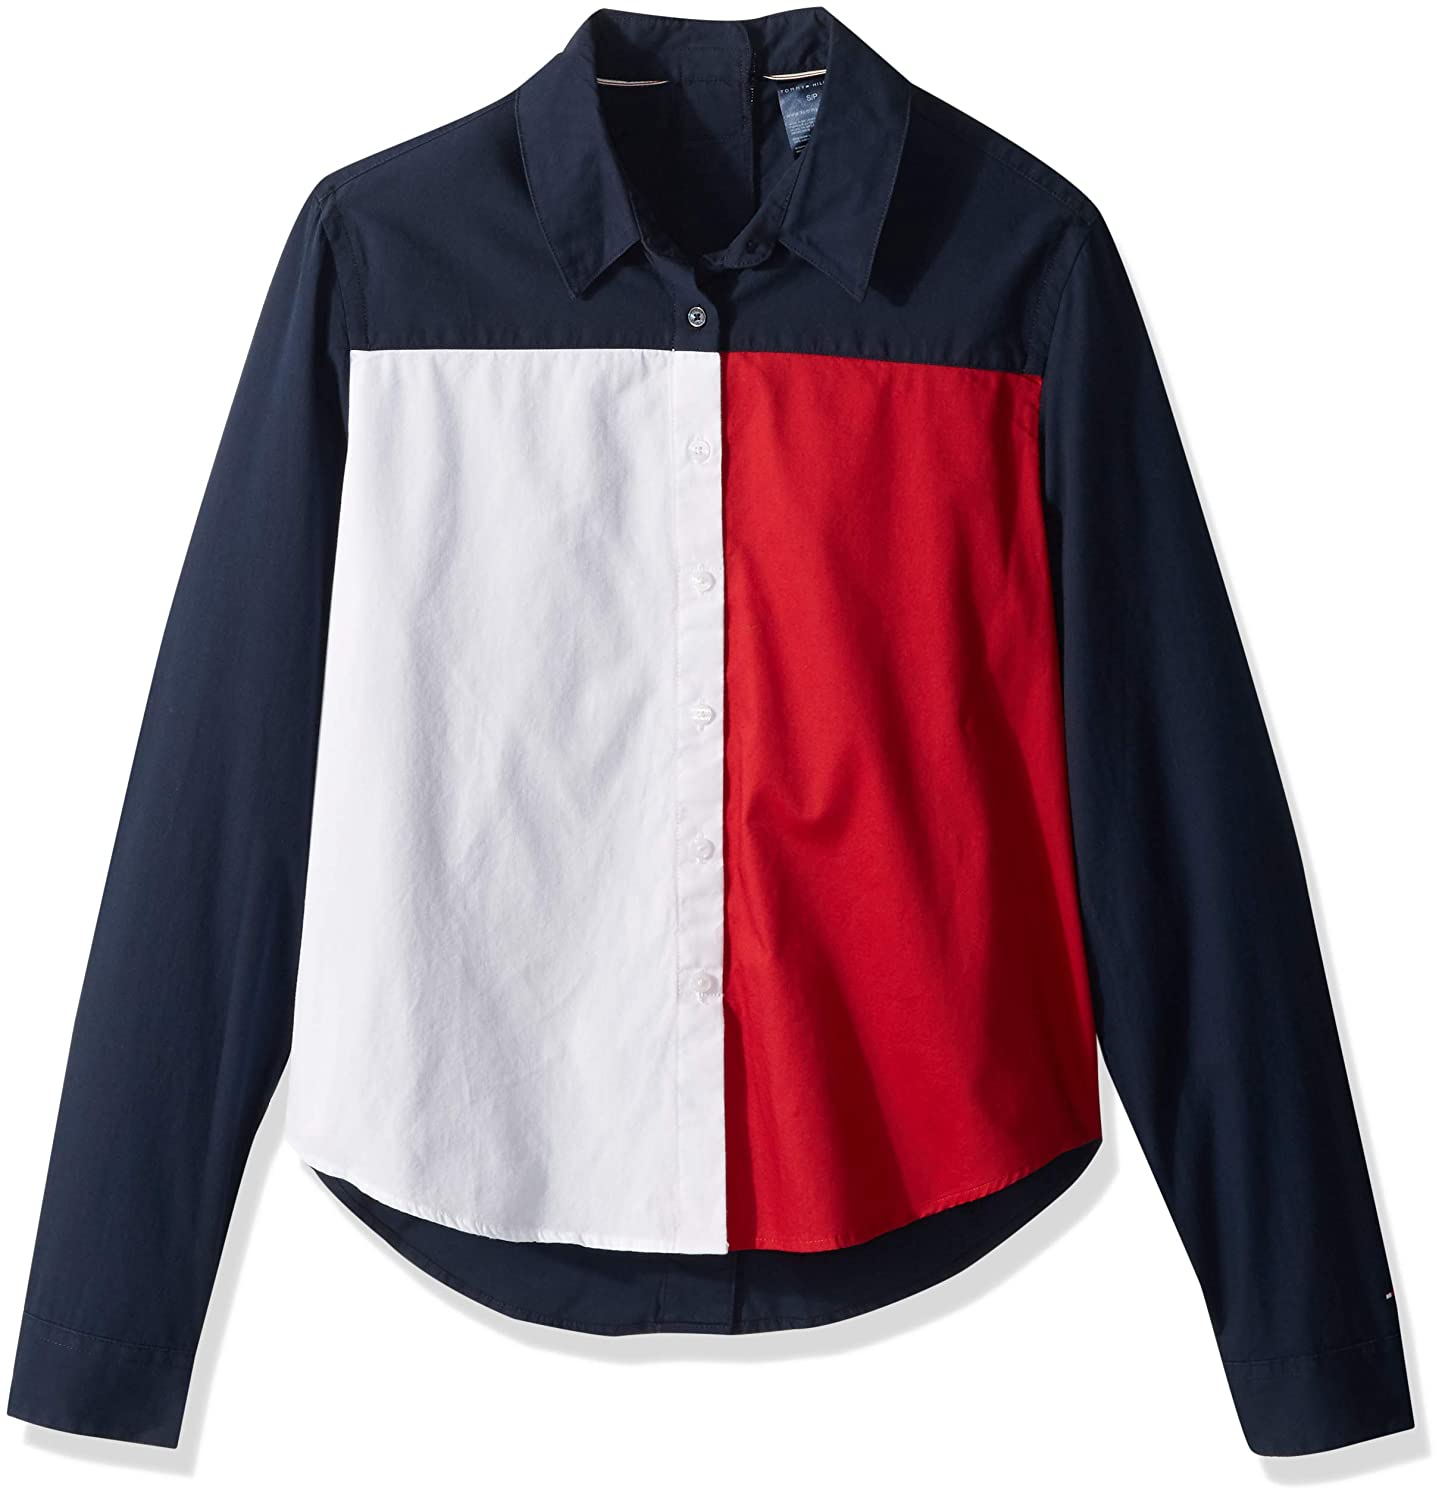 83b84e58 Tommy Hilfiger Adaptive Women's Seated Fit Flag Shirt with Adjustable  Closure at Amazon Women's Clothing store: